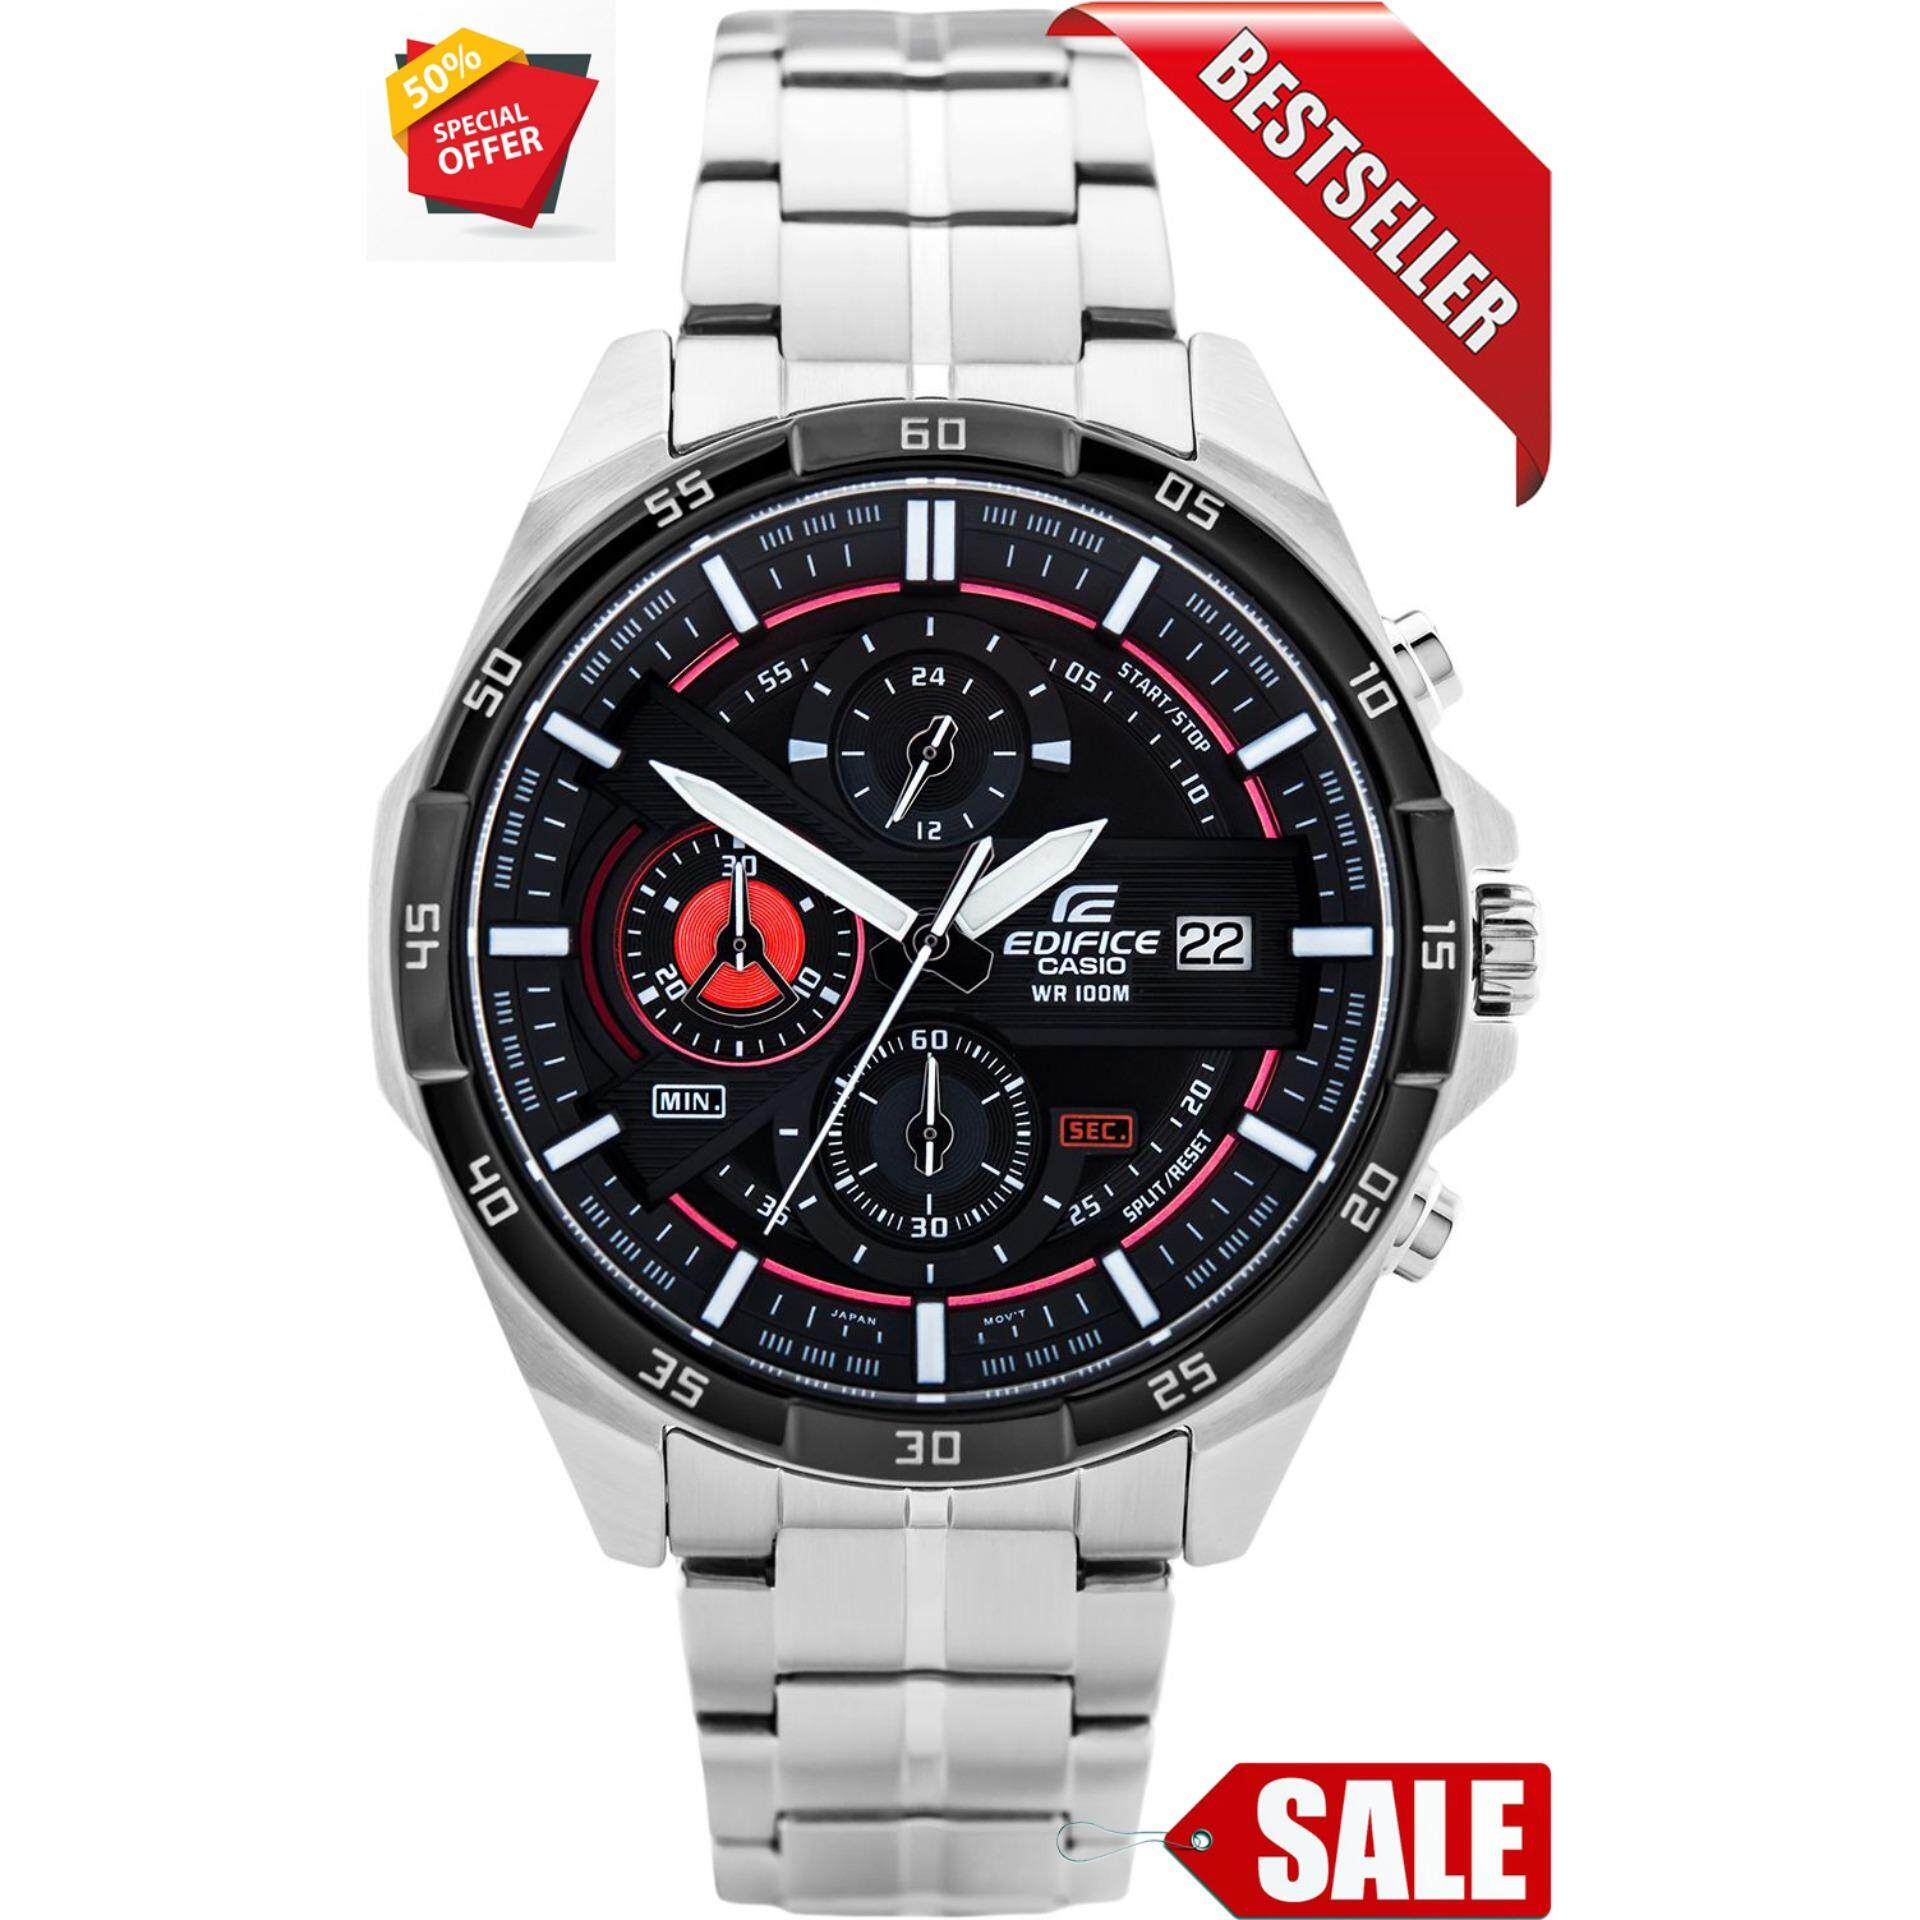 Mens Branded Watches With Best Price In Malaysia Ricoh Strap St 3 W Special Promotion Casio Edifice Efr 556 Black Dial Men Watch